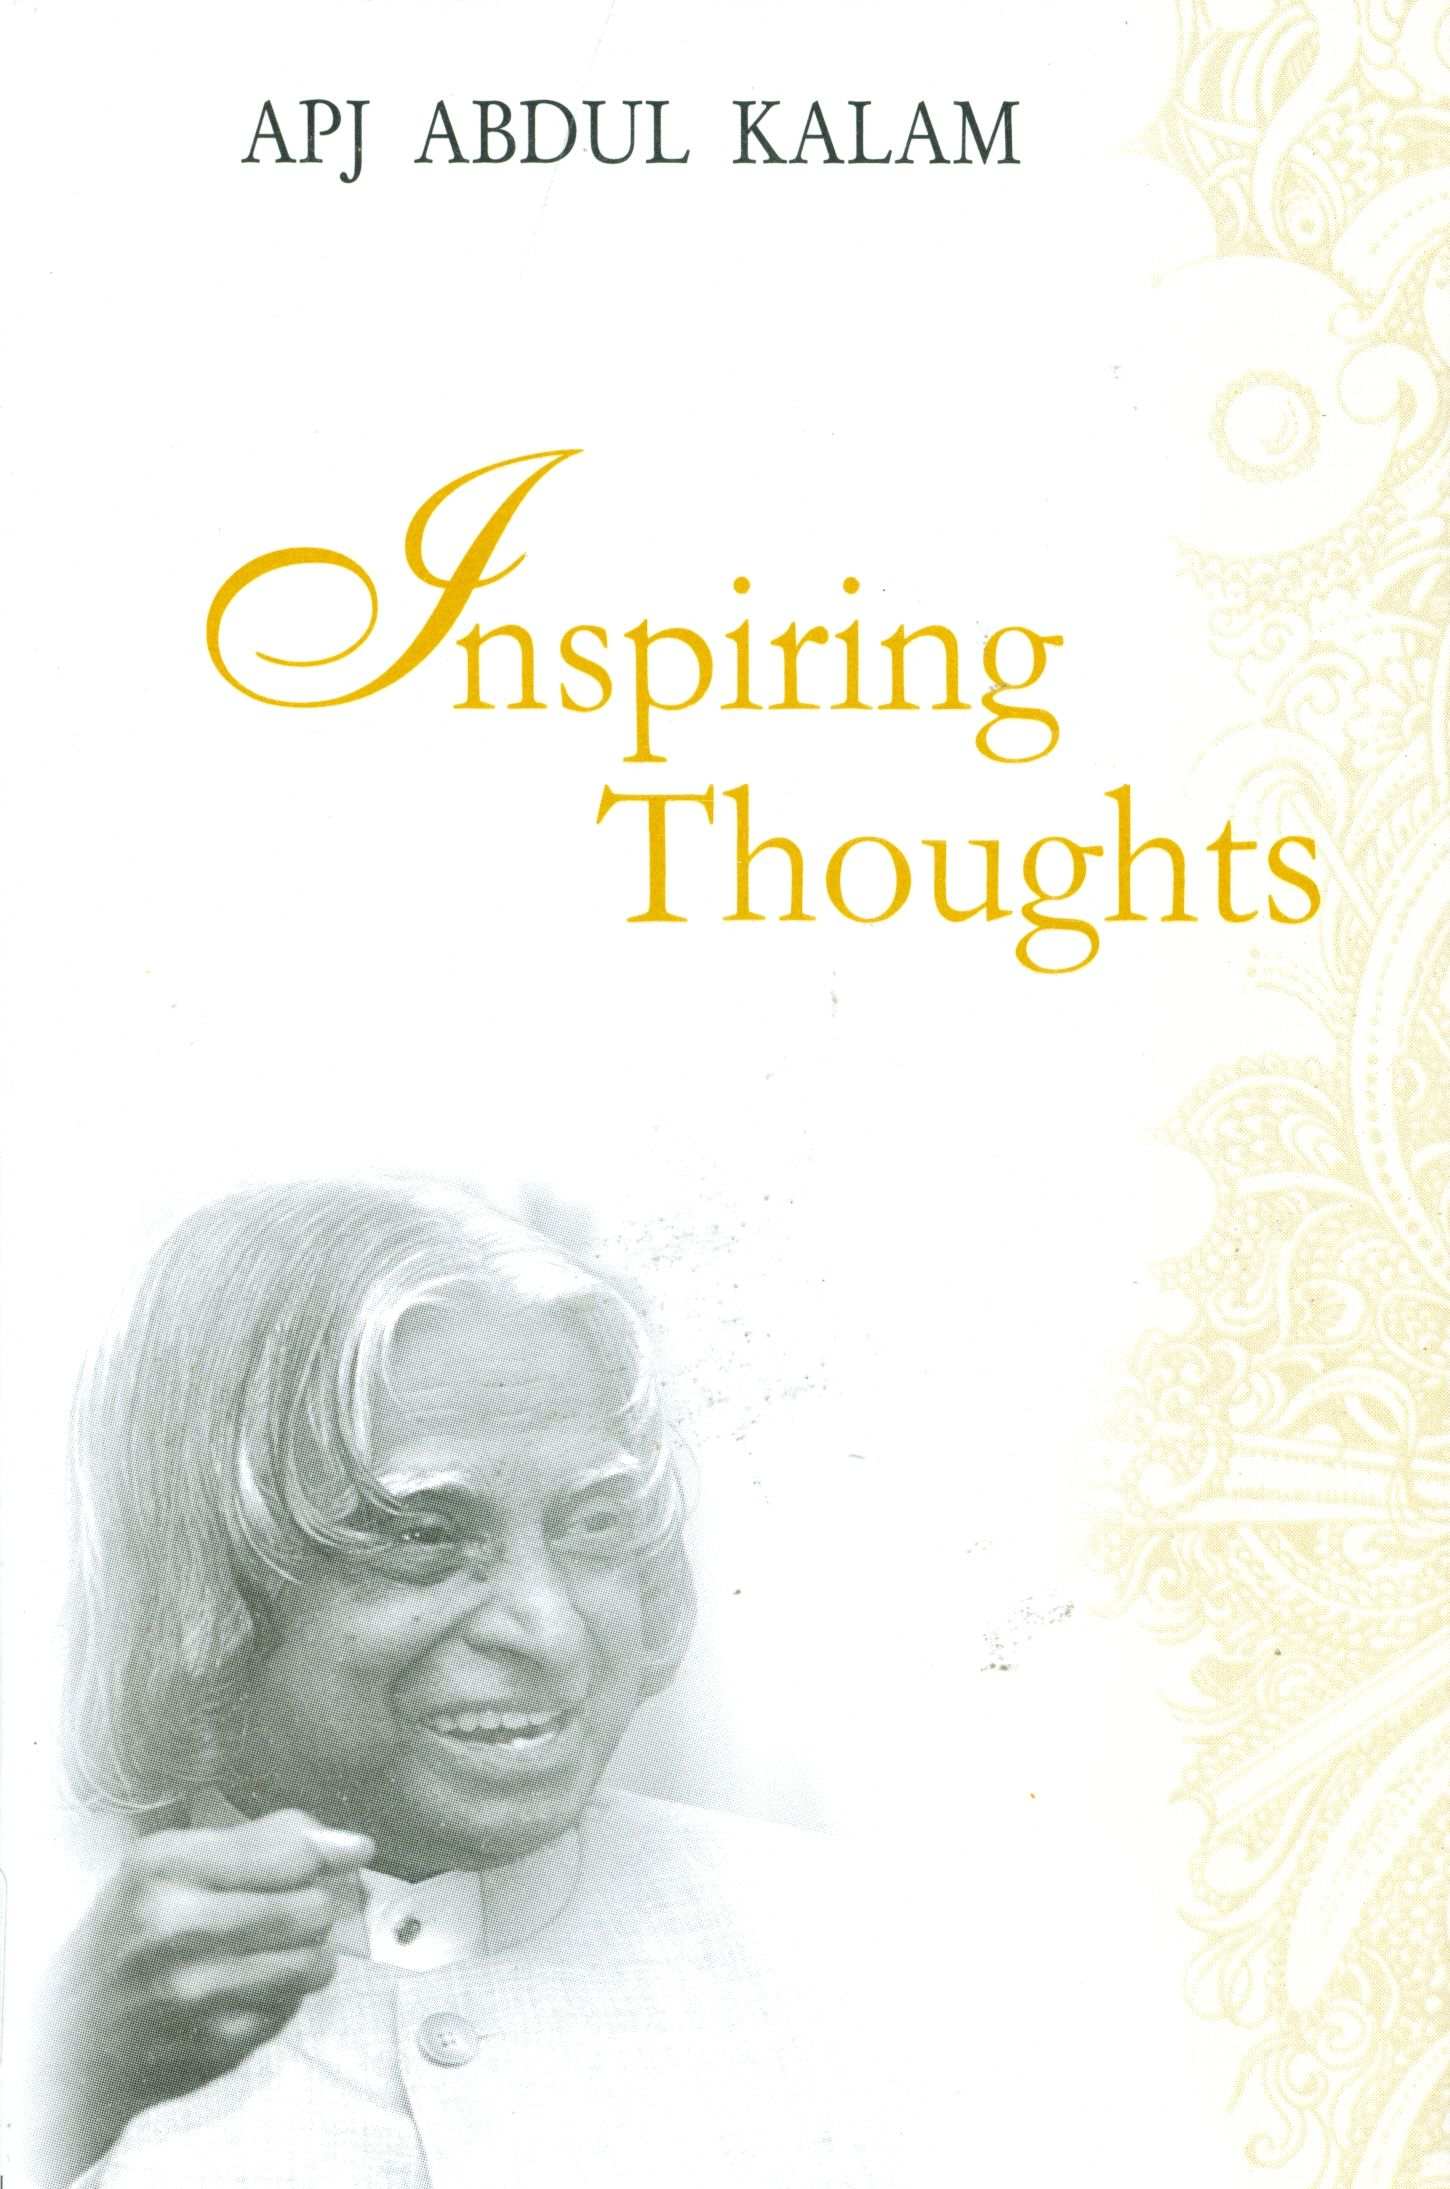 mara sapananu bharat by a p j abdul kalam dr abdul kalam books a selection of the best of apj abdul kalam s thought provoking and inspiring words